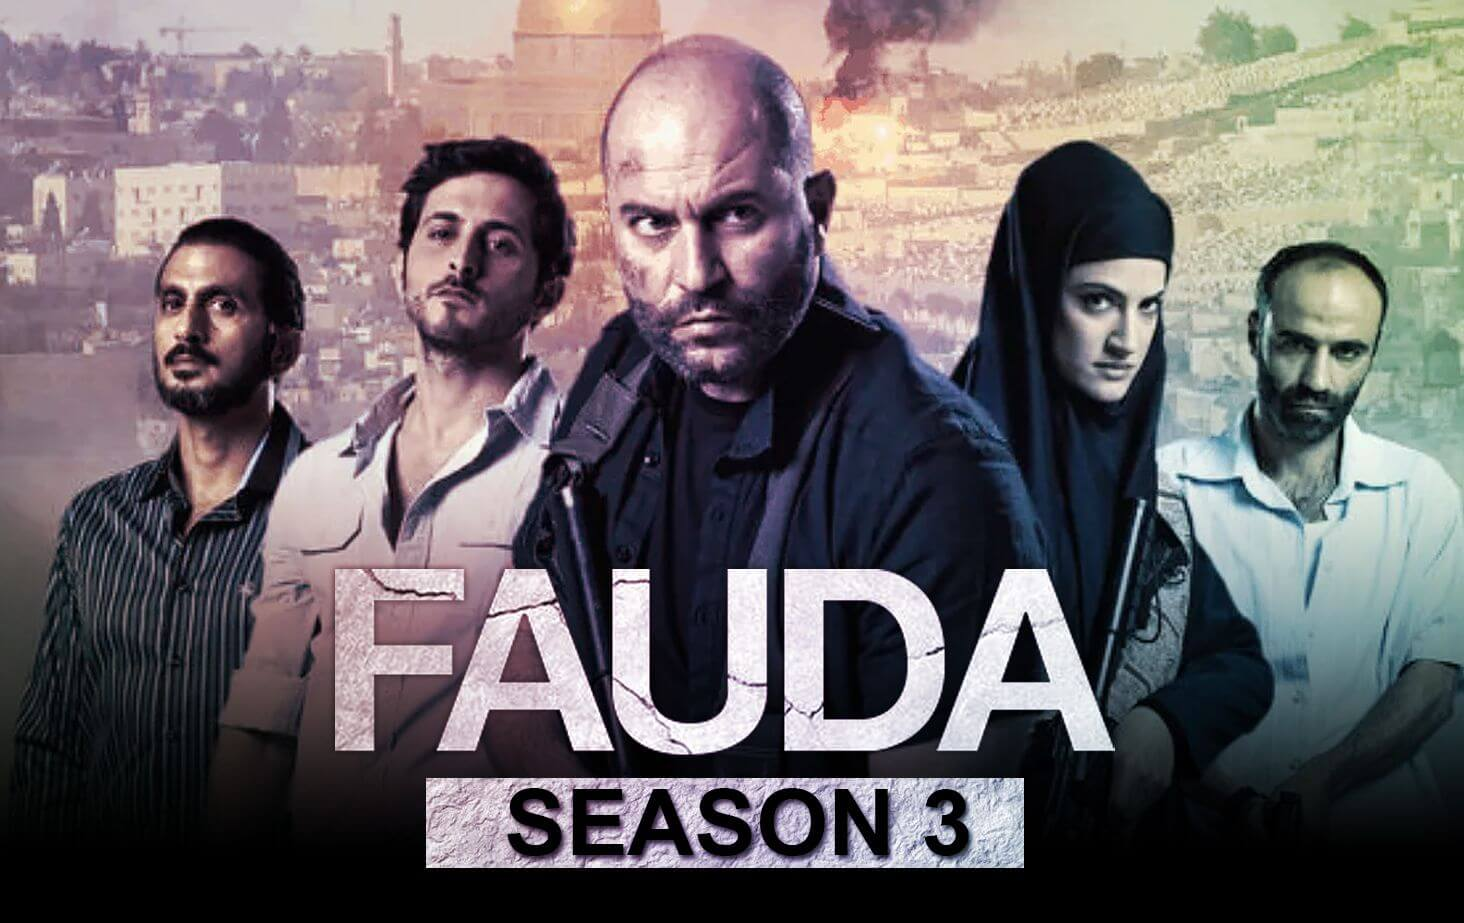 Fauda Season 3 Netlflix Web Series Cast Wiki Imdb Episodes Watch Online Download Free in Hindi with English Subtitle